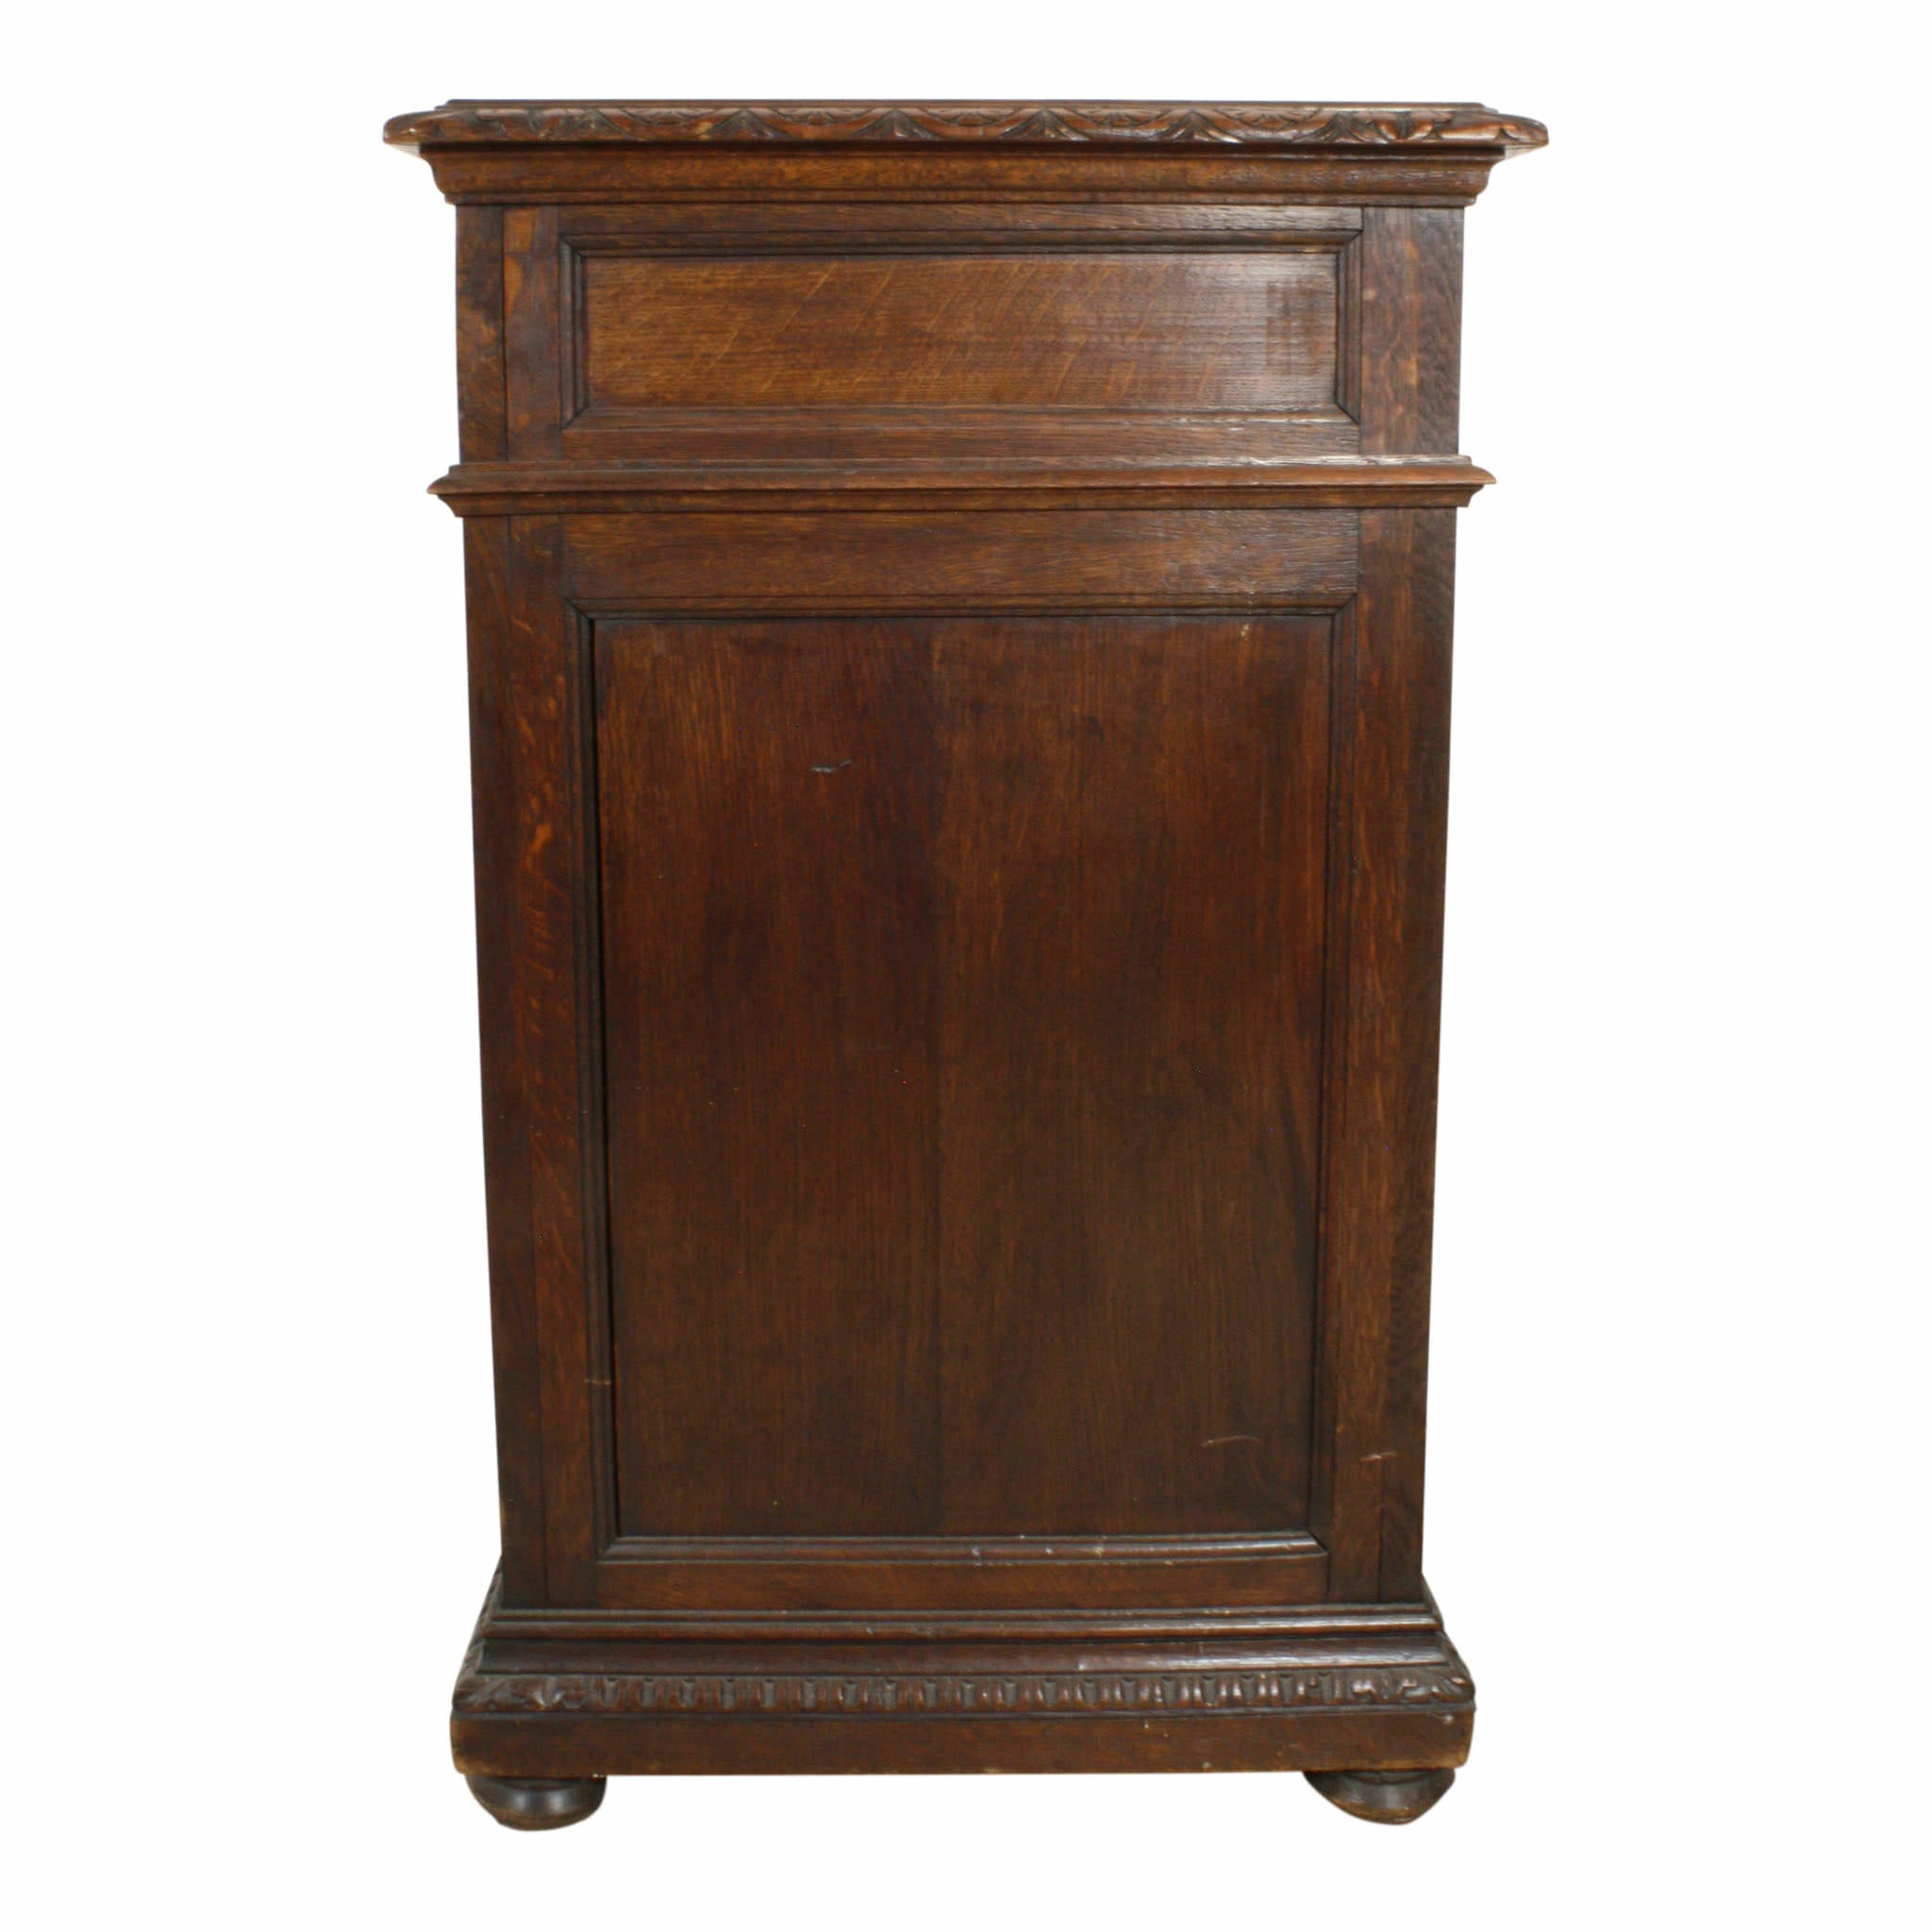 Chamber Pot Bedside Cabinet